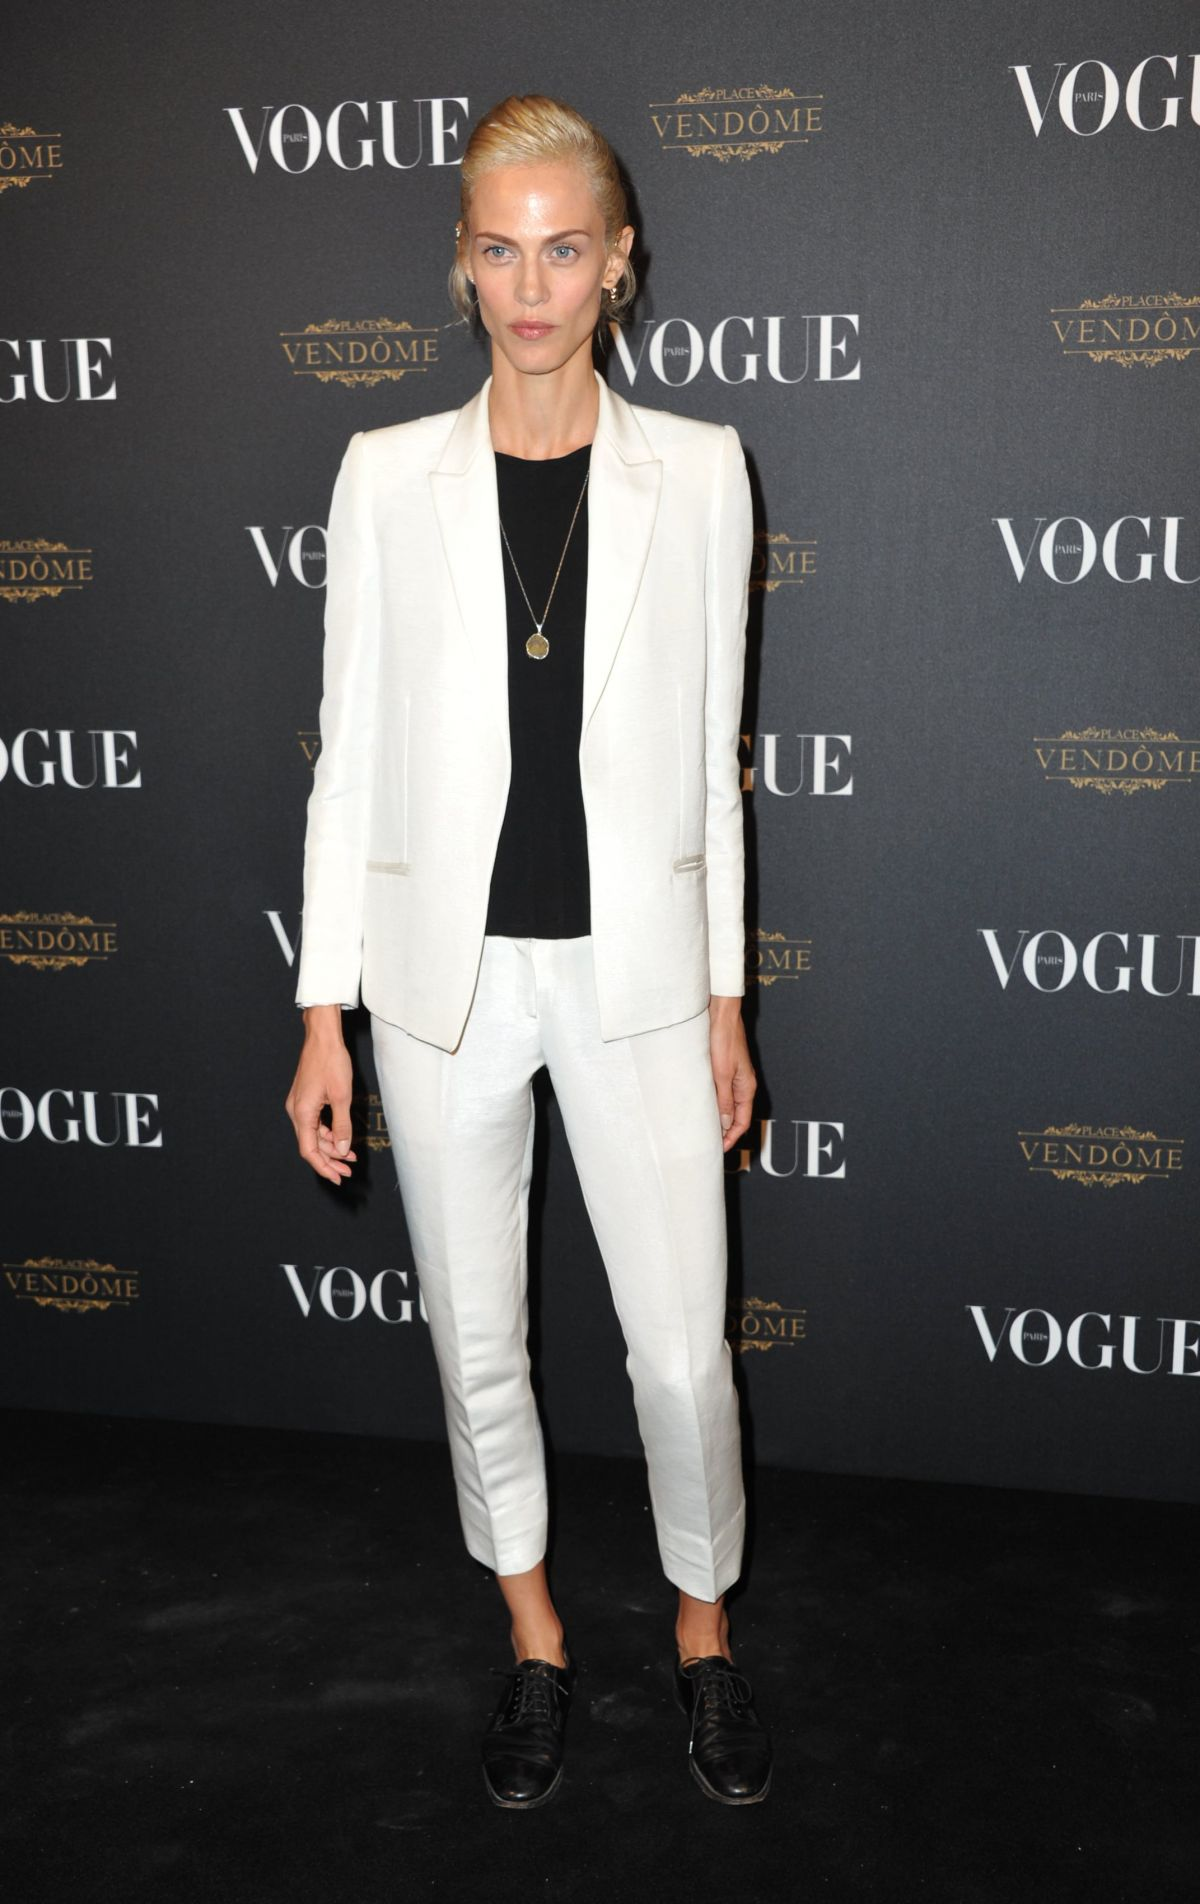 AYMELINE VALADE at Vogue's 95th Anniversary Party in Paris 10/03/2015